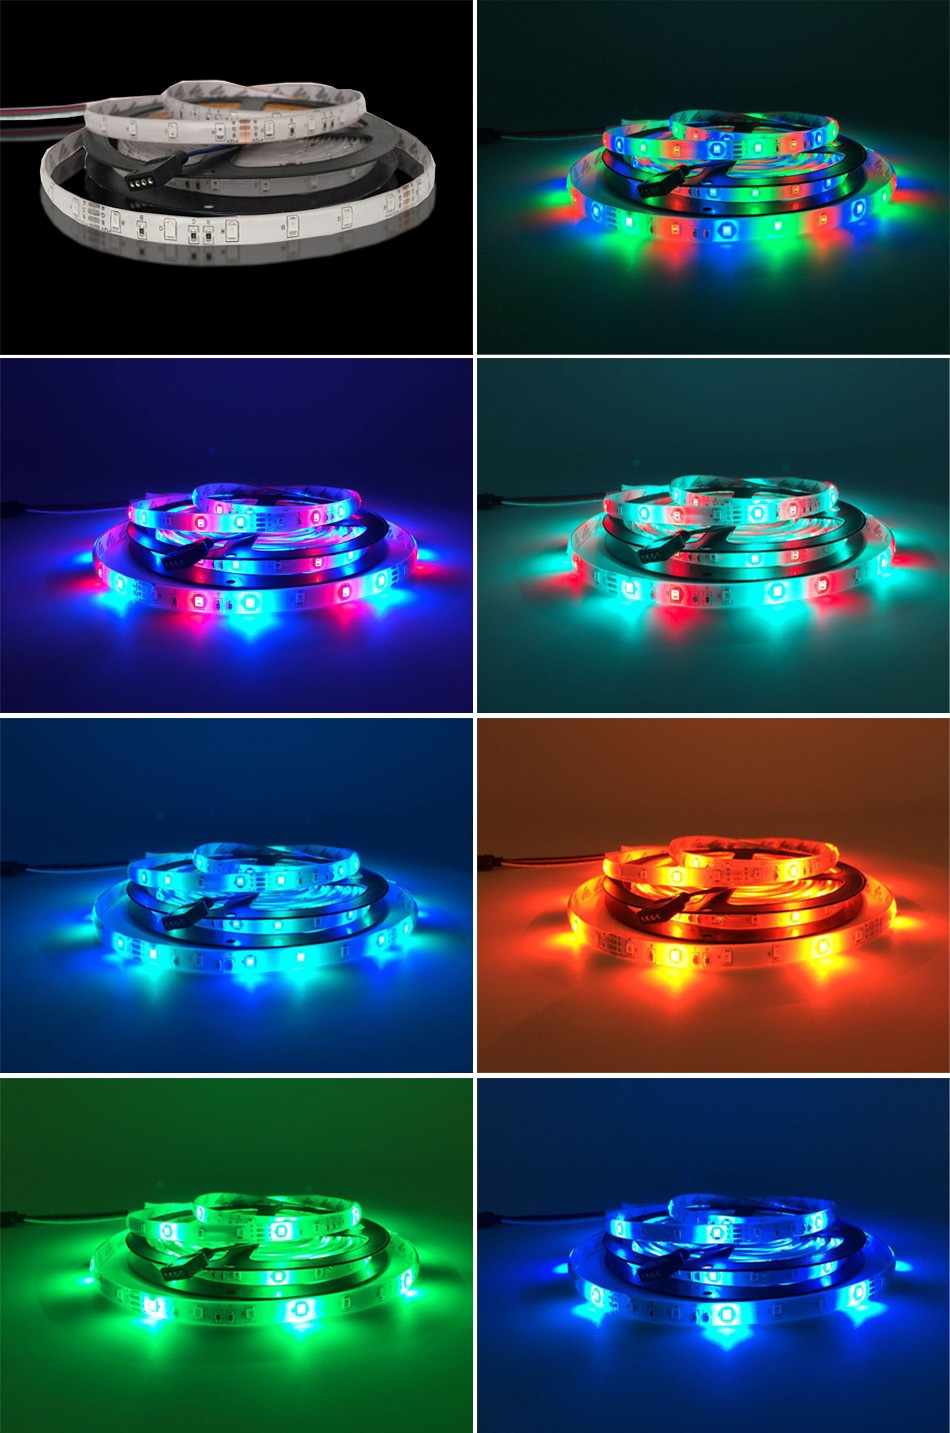 5 10 15 20m waterproof flexible strip led light underwater pool bath spa remote ebay. Black Bedroom Furniture Sets. Home Design Ideas